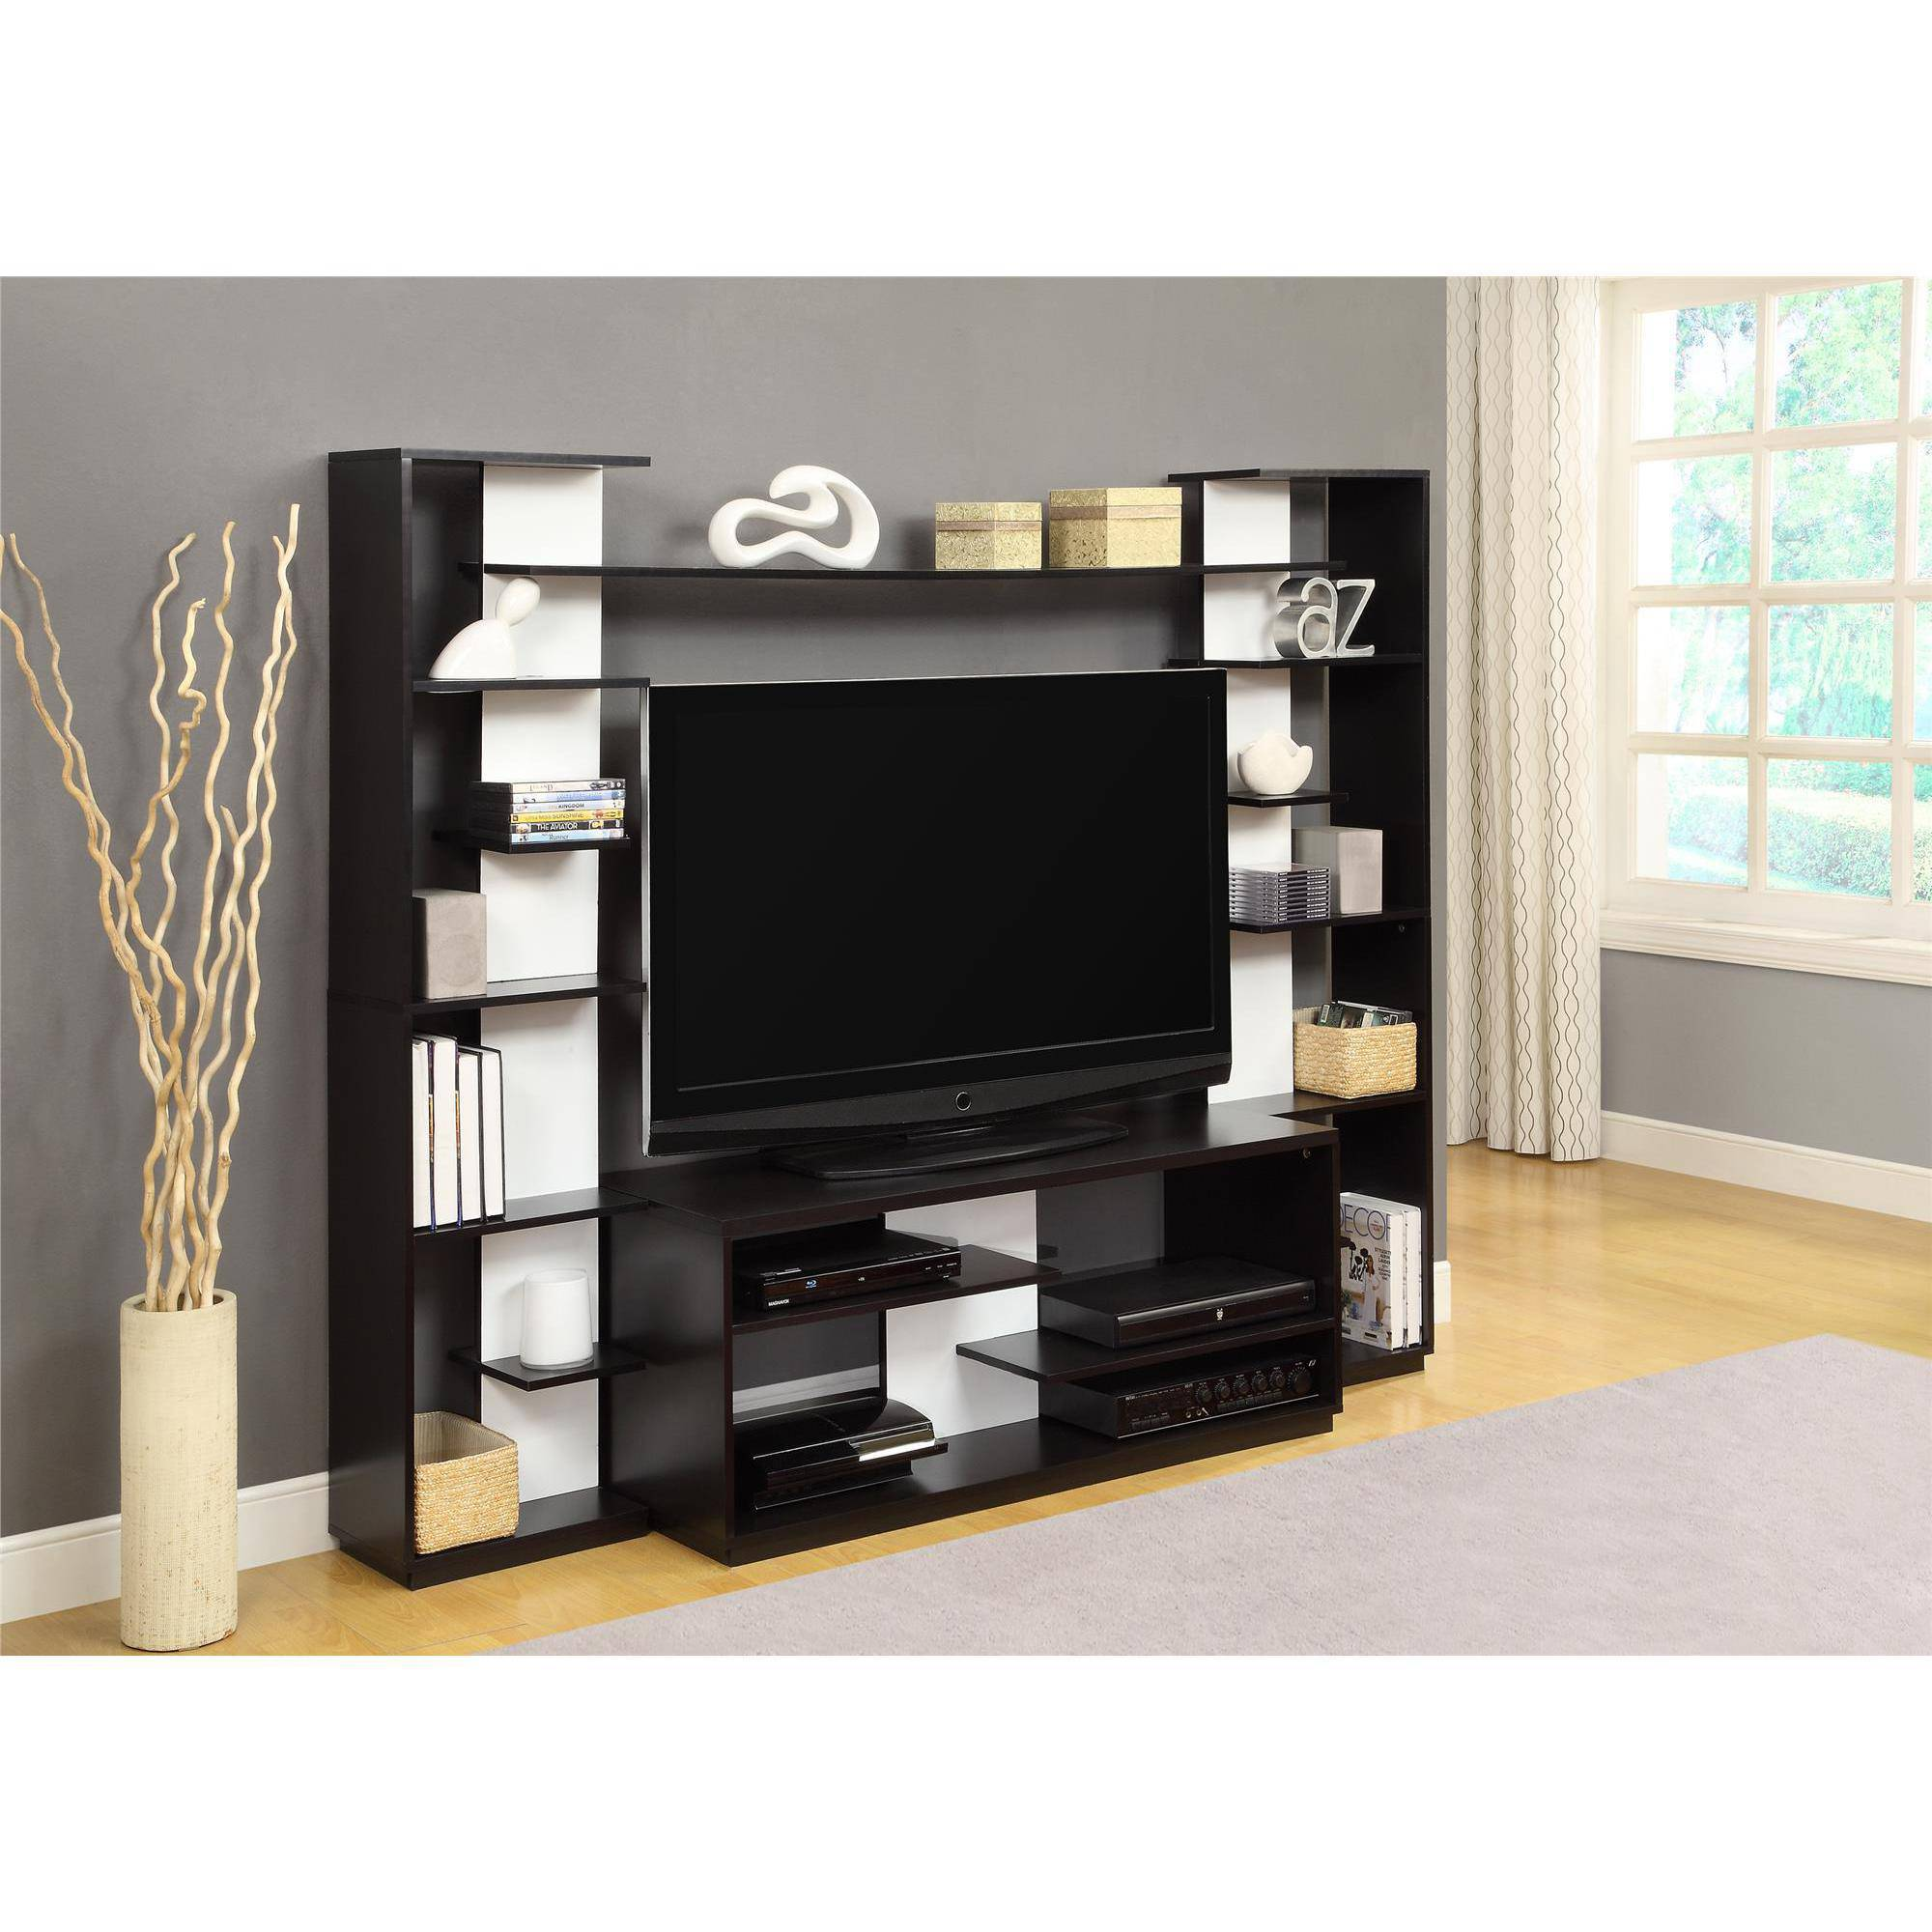 Altra Black and White Home Entertainment Center with Two